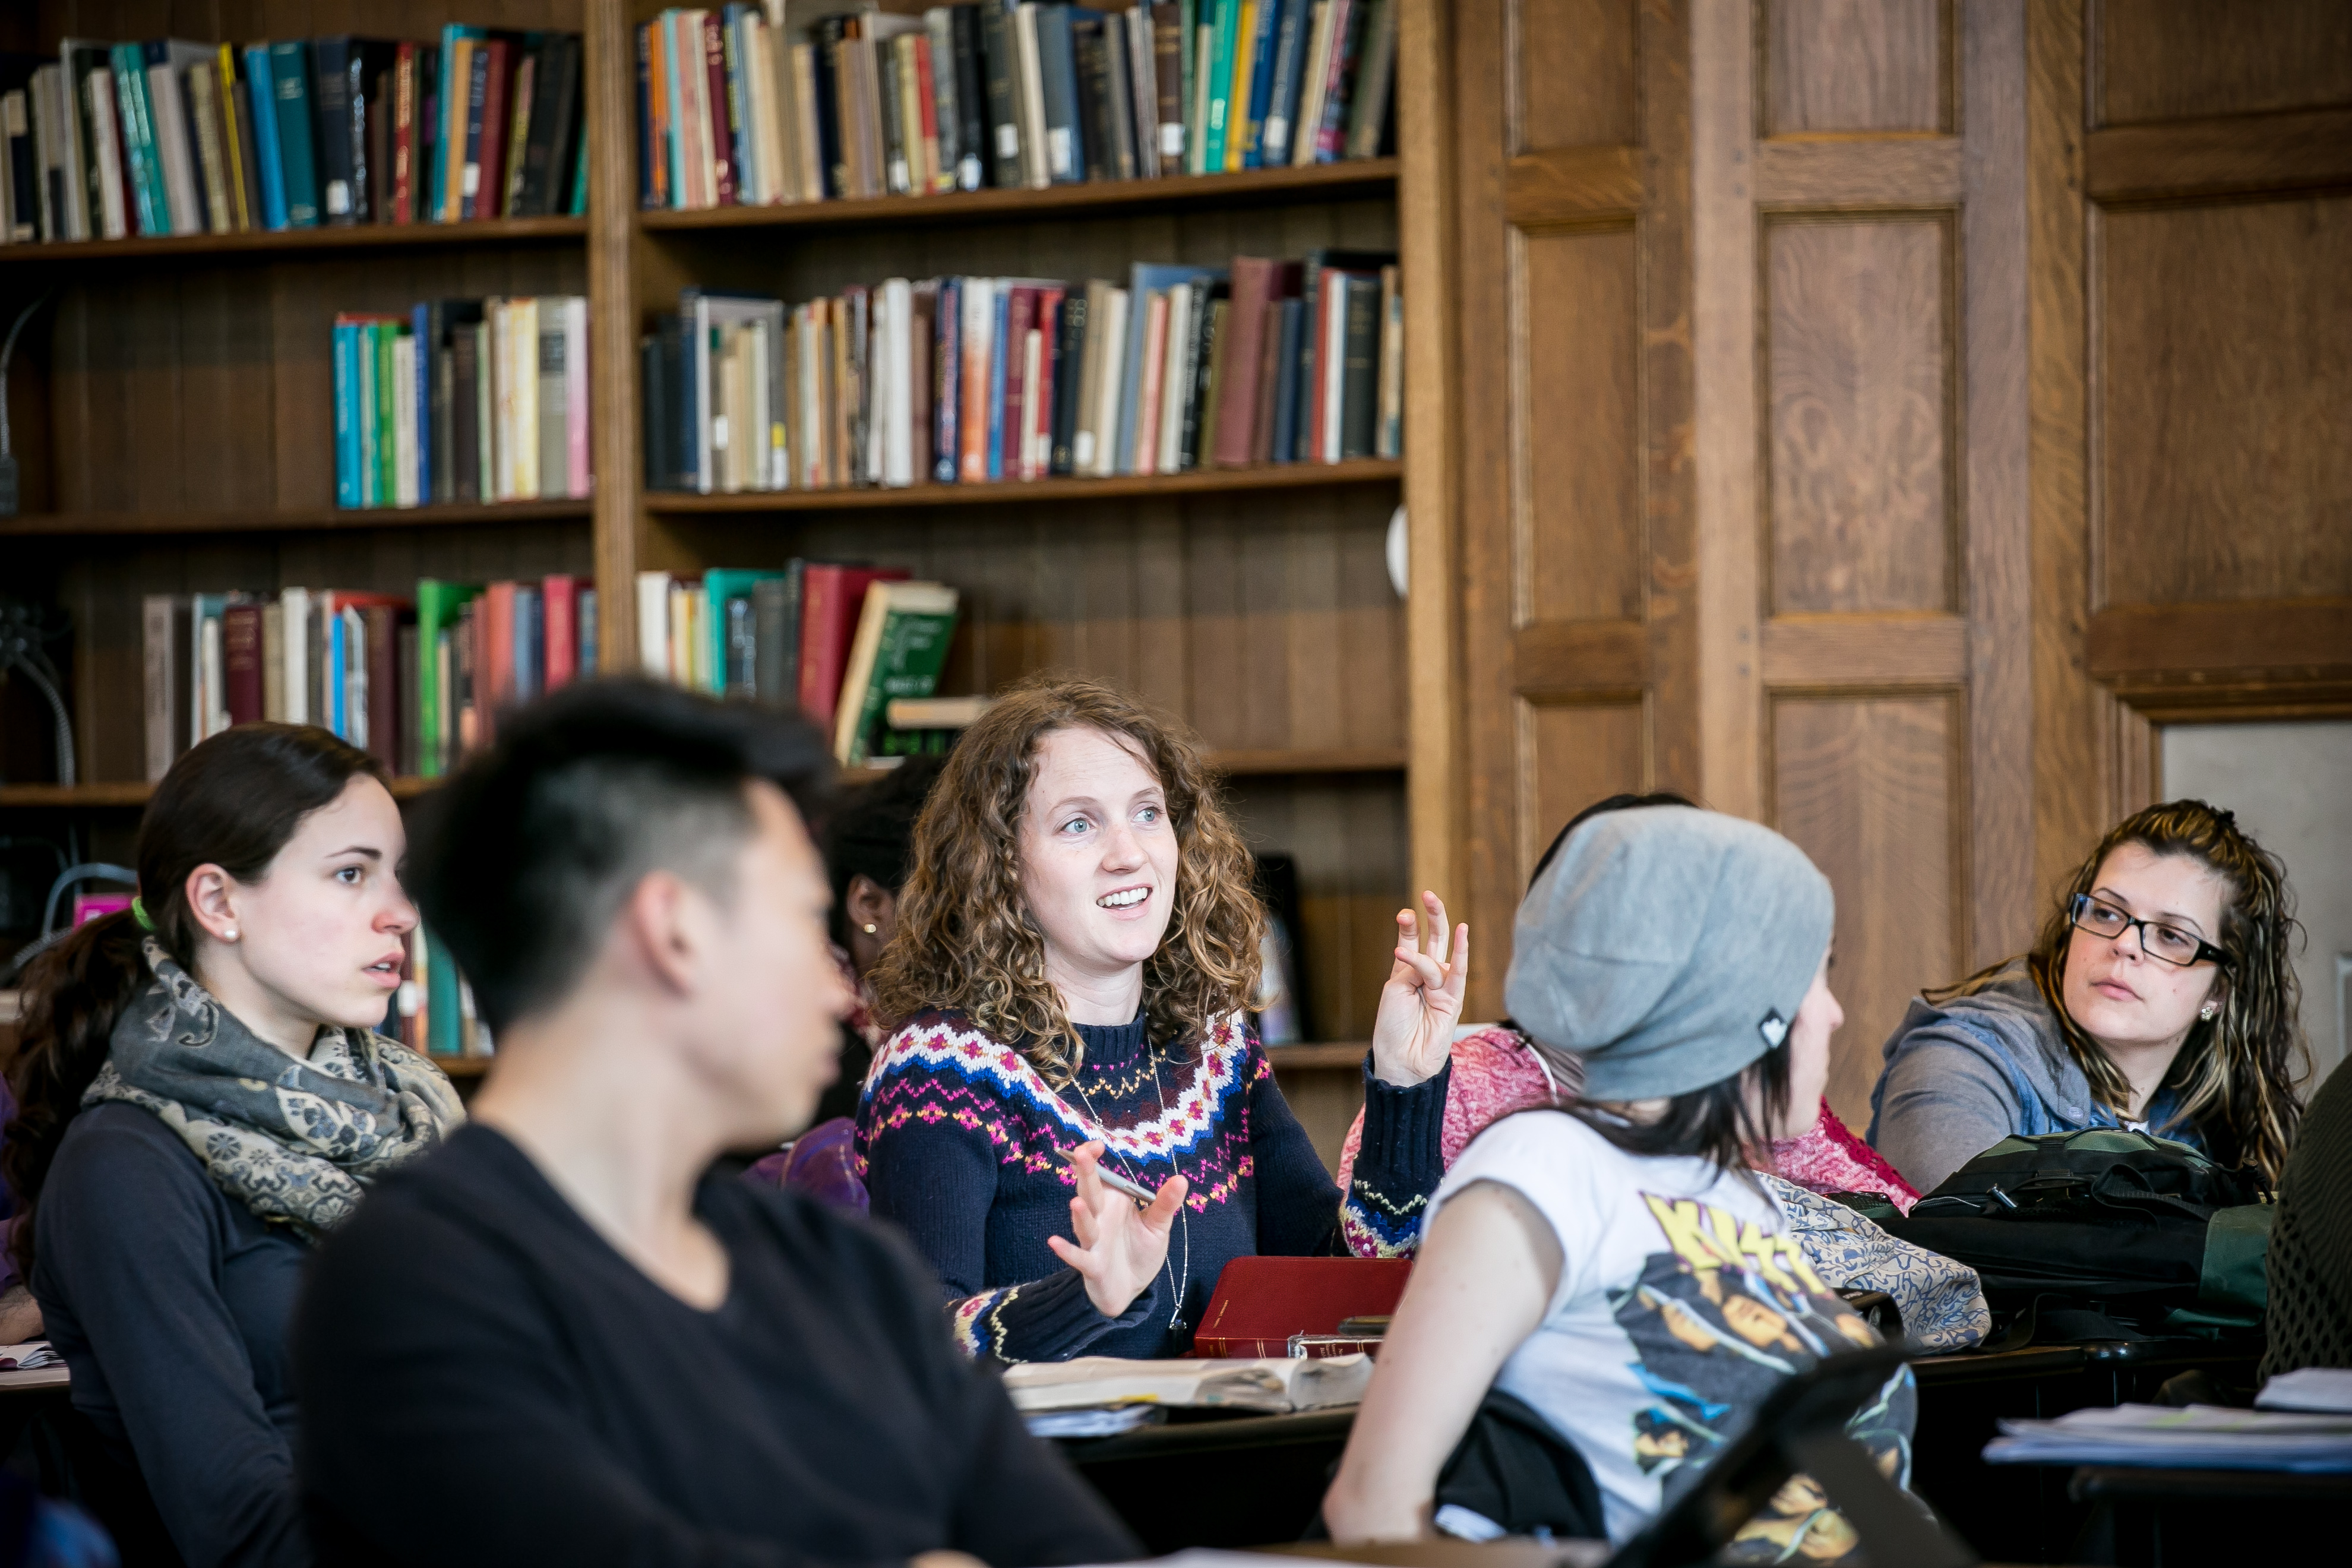 Students in class at Wycliffe College